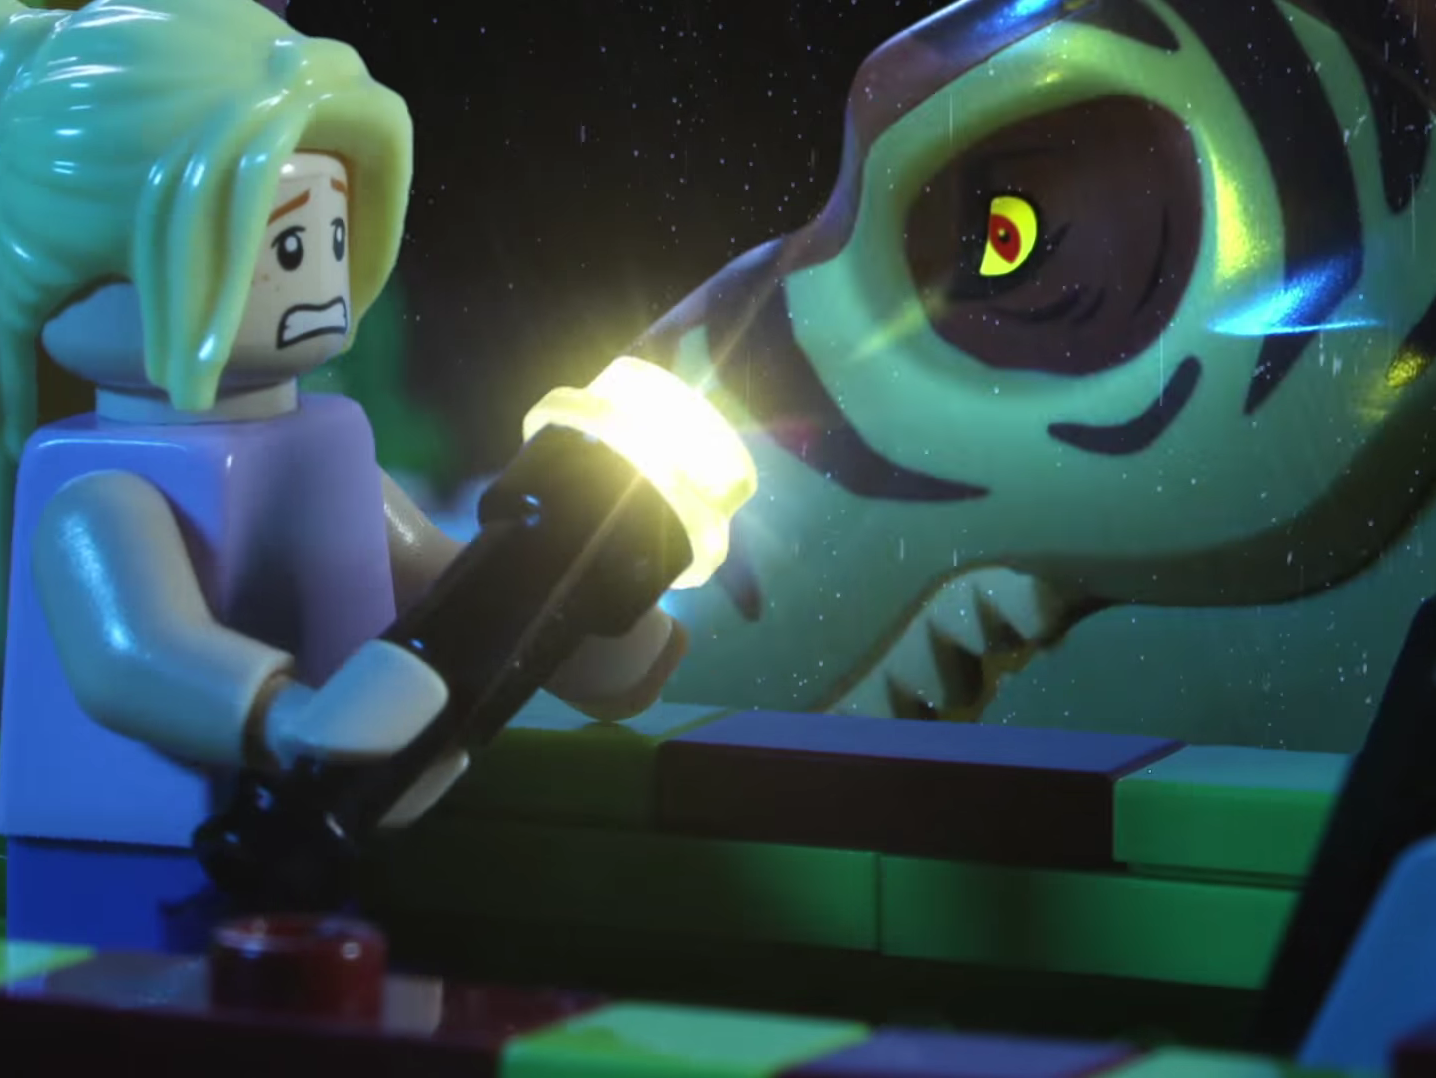 Lego Jurassic Park Stop Motion Uses 100 000 Worth Of Lego